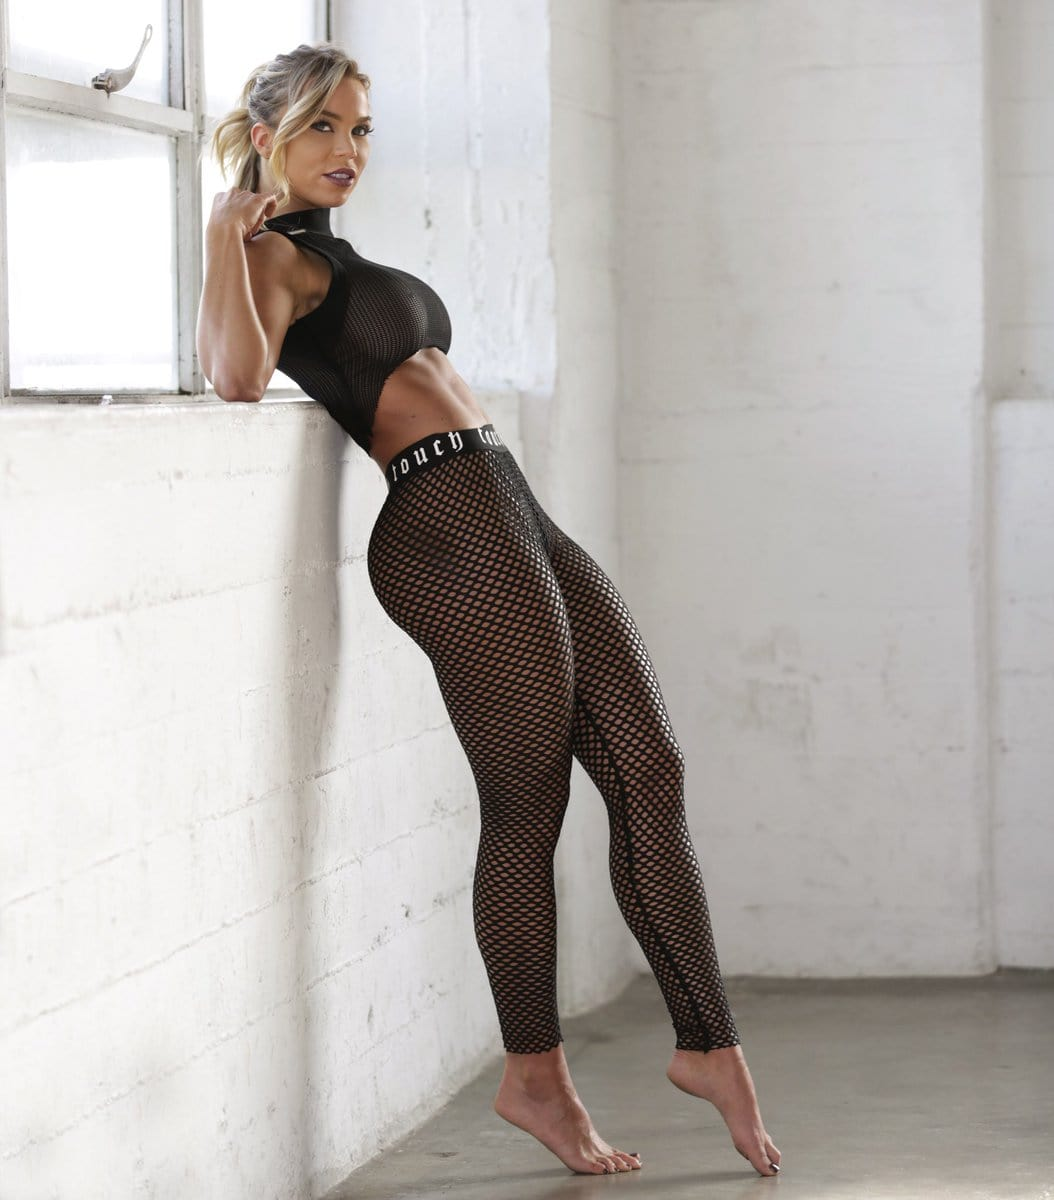 Images Lauren Drain nude (37 photo), Sexy, Leaked, Feet, see through 2019